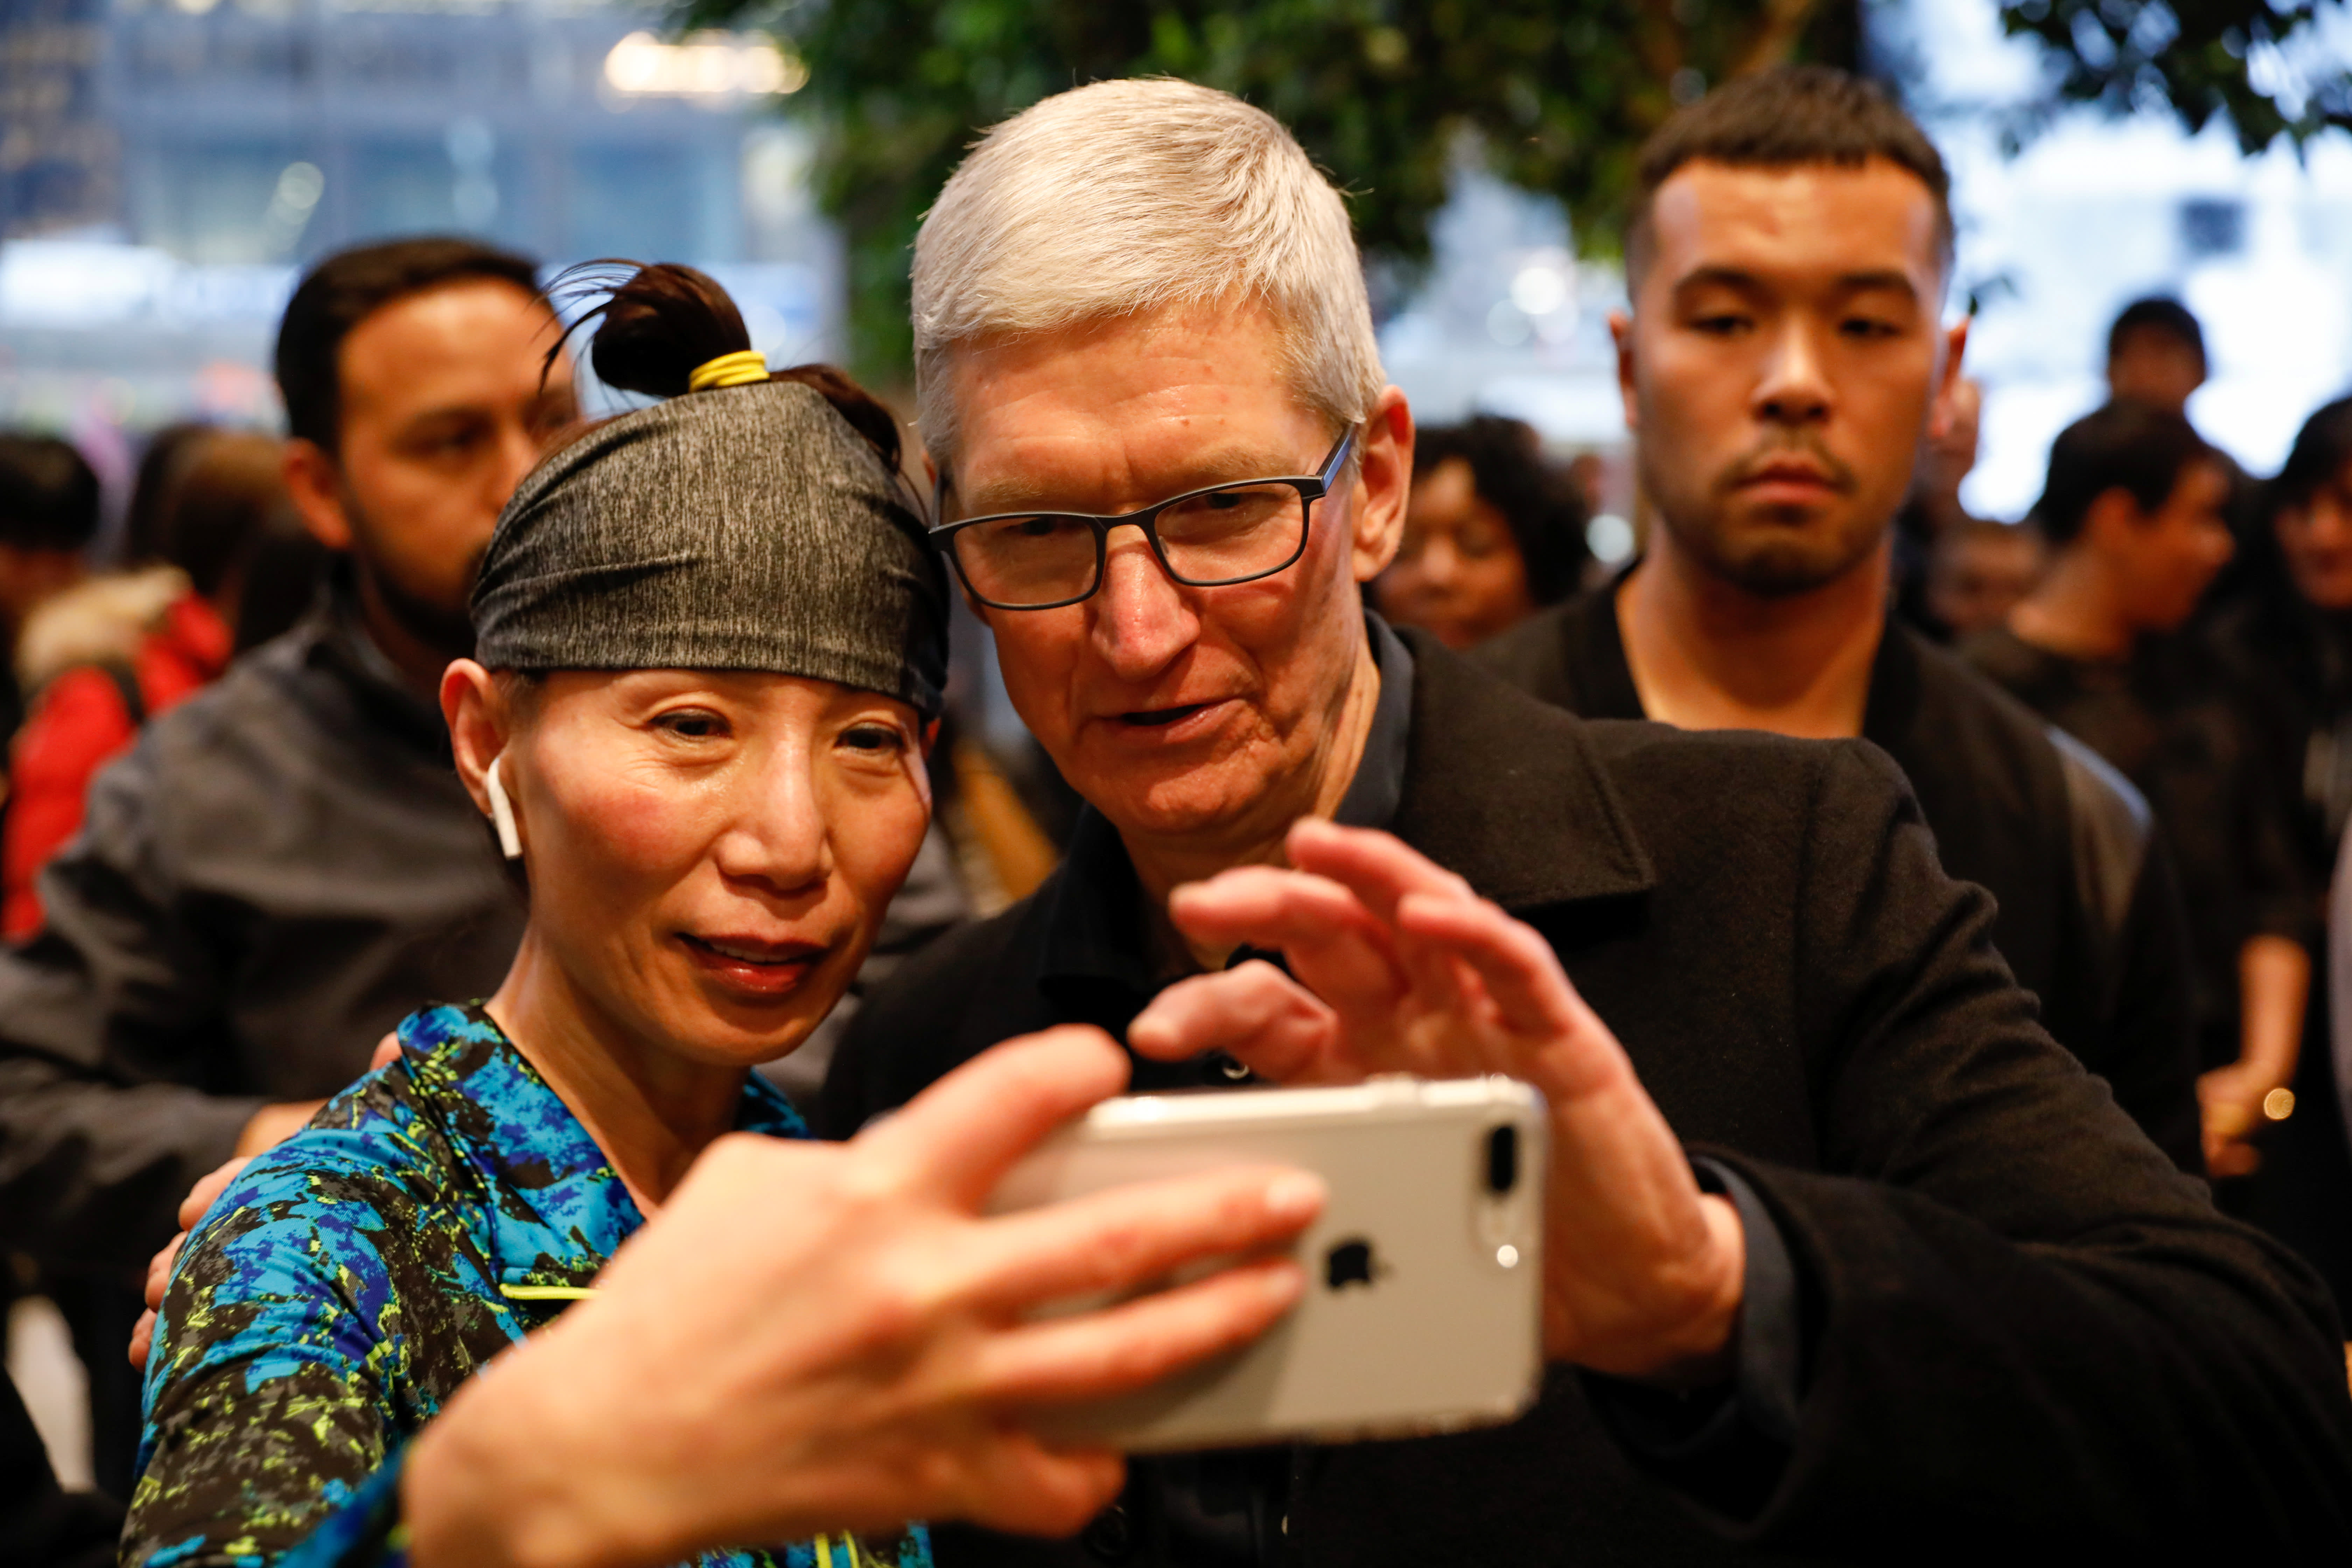 Don't buy an iPhone right now — Apple's new iPhones are coming next month